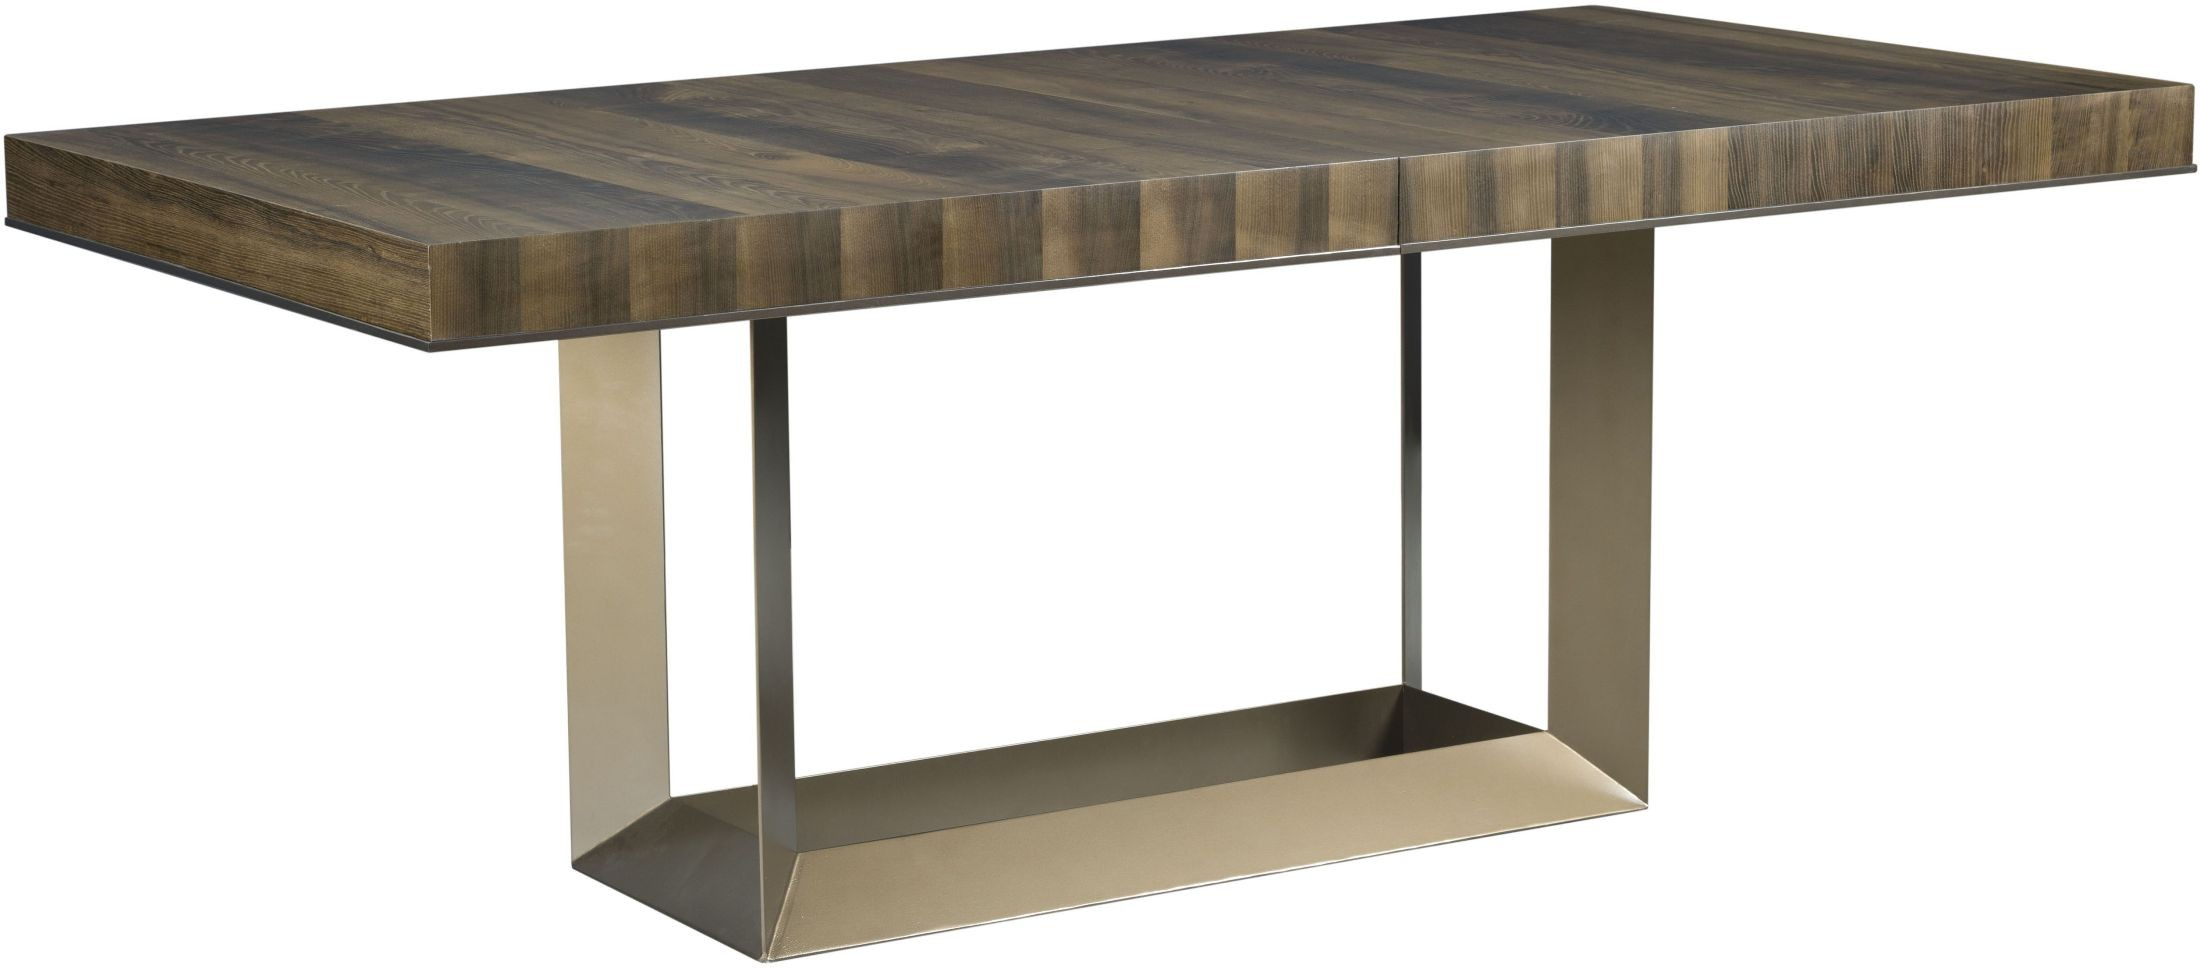 ad modern organics smokey quartz bandon extendable rectangular dining table from american drew. Black Bedroom Furniture Sets. Home Design Ideas